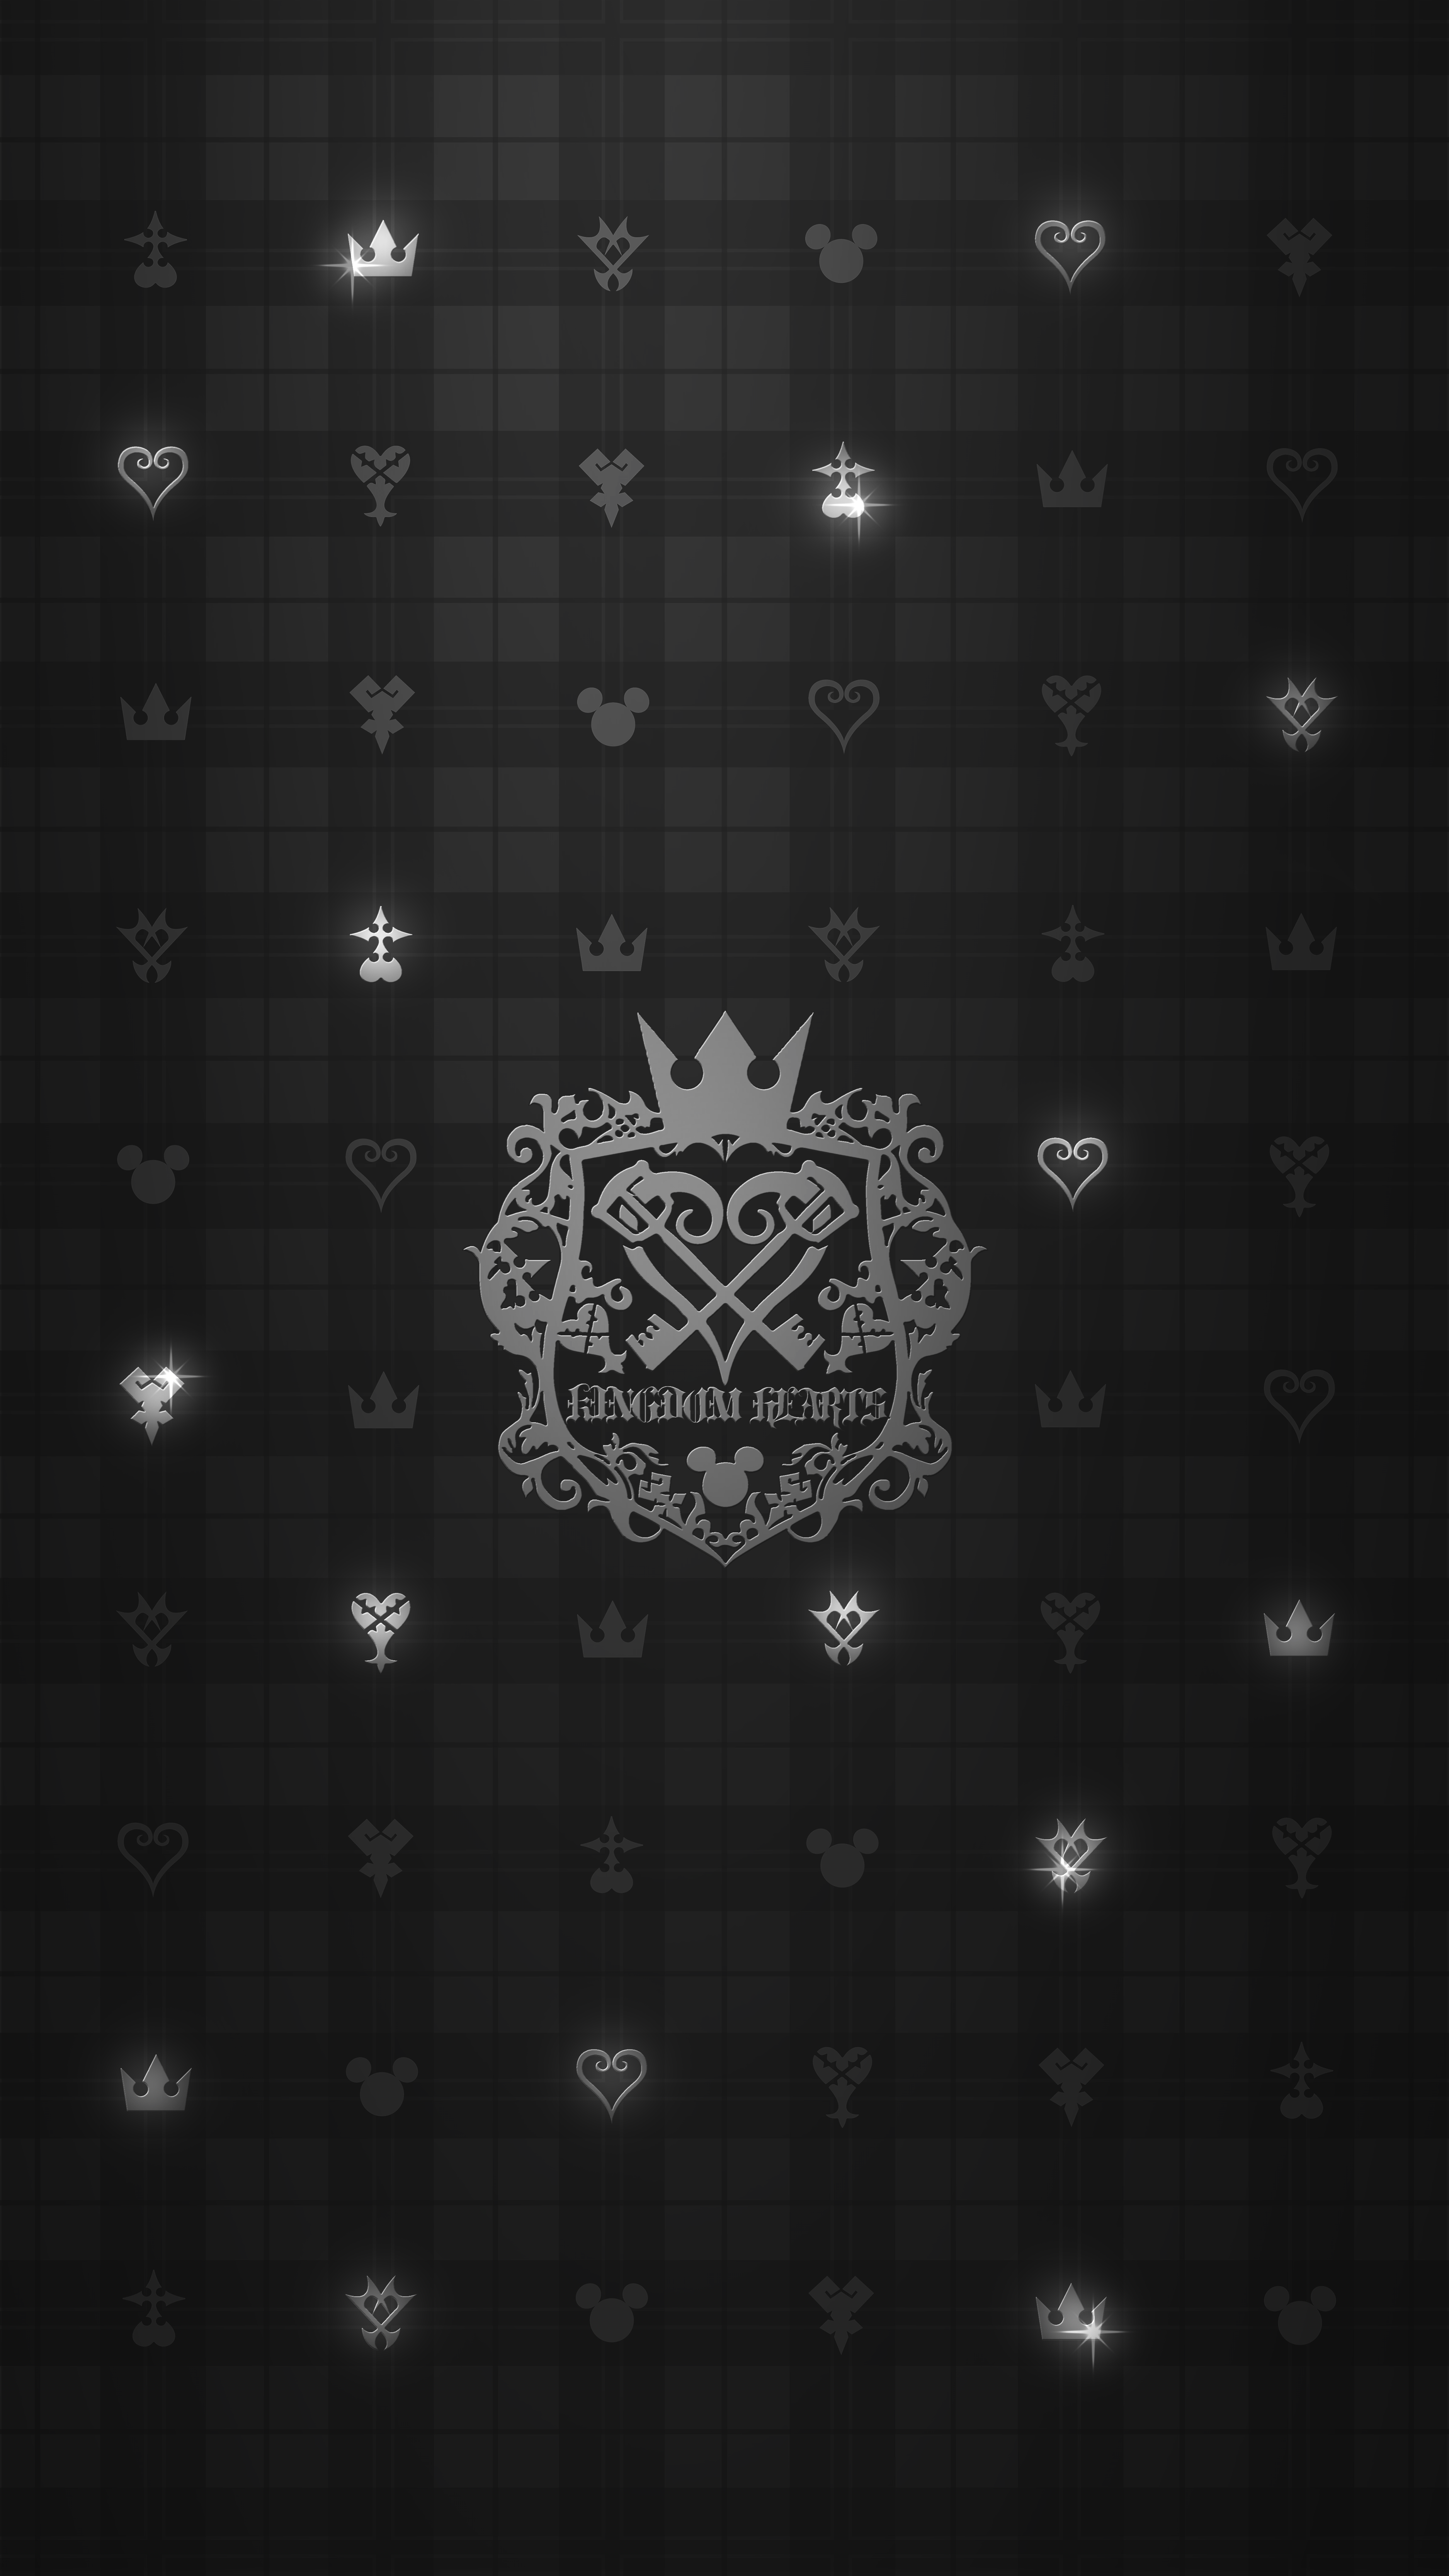 3750x6667 iPhone Wallpapers - Kingdom Hearts Insider